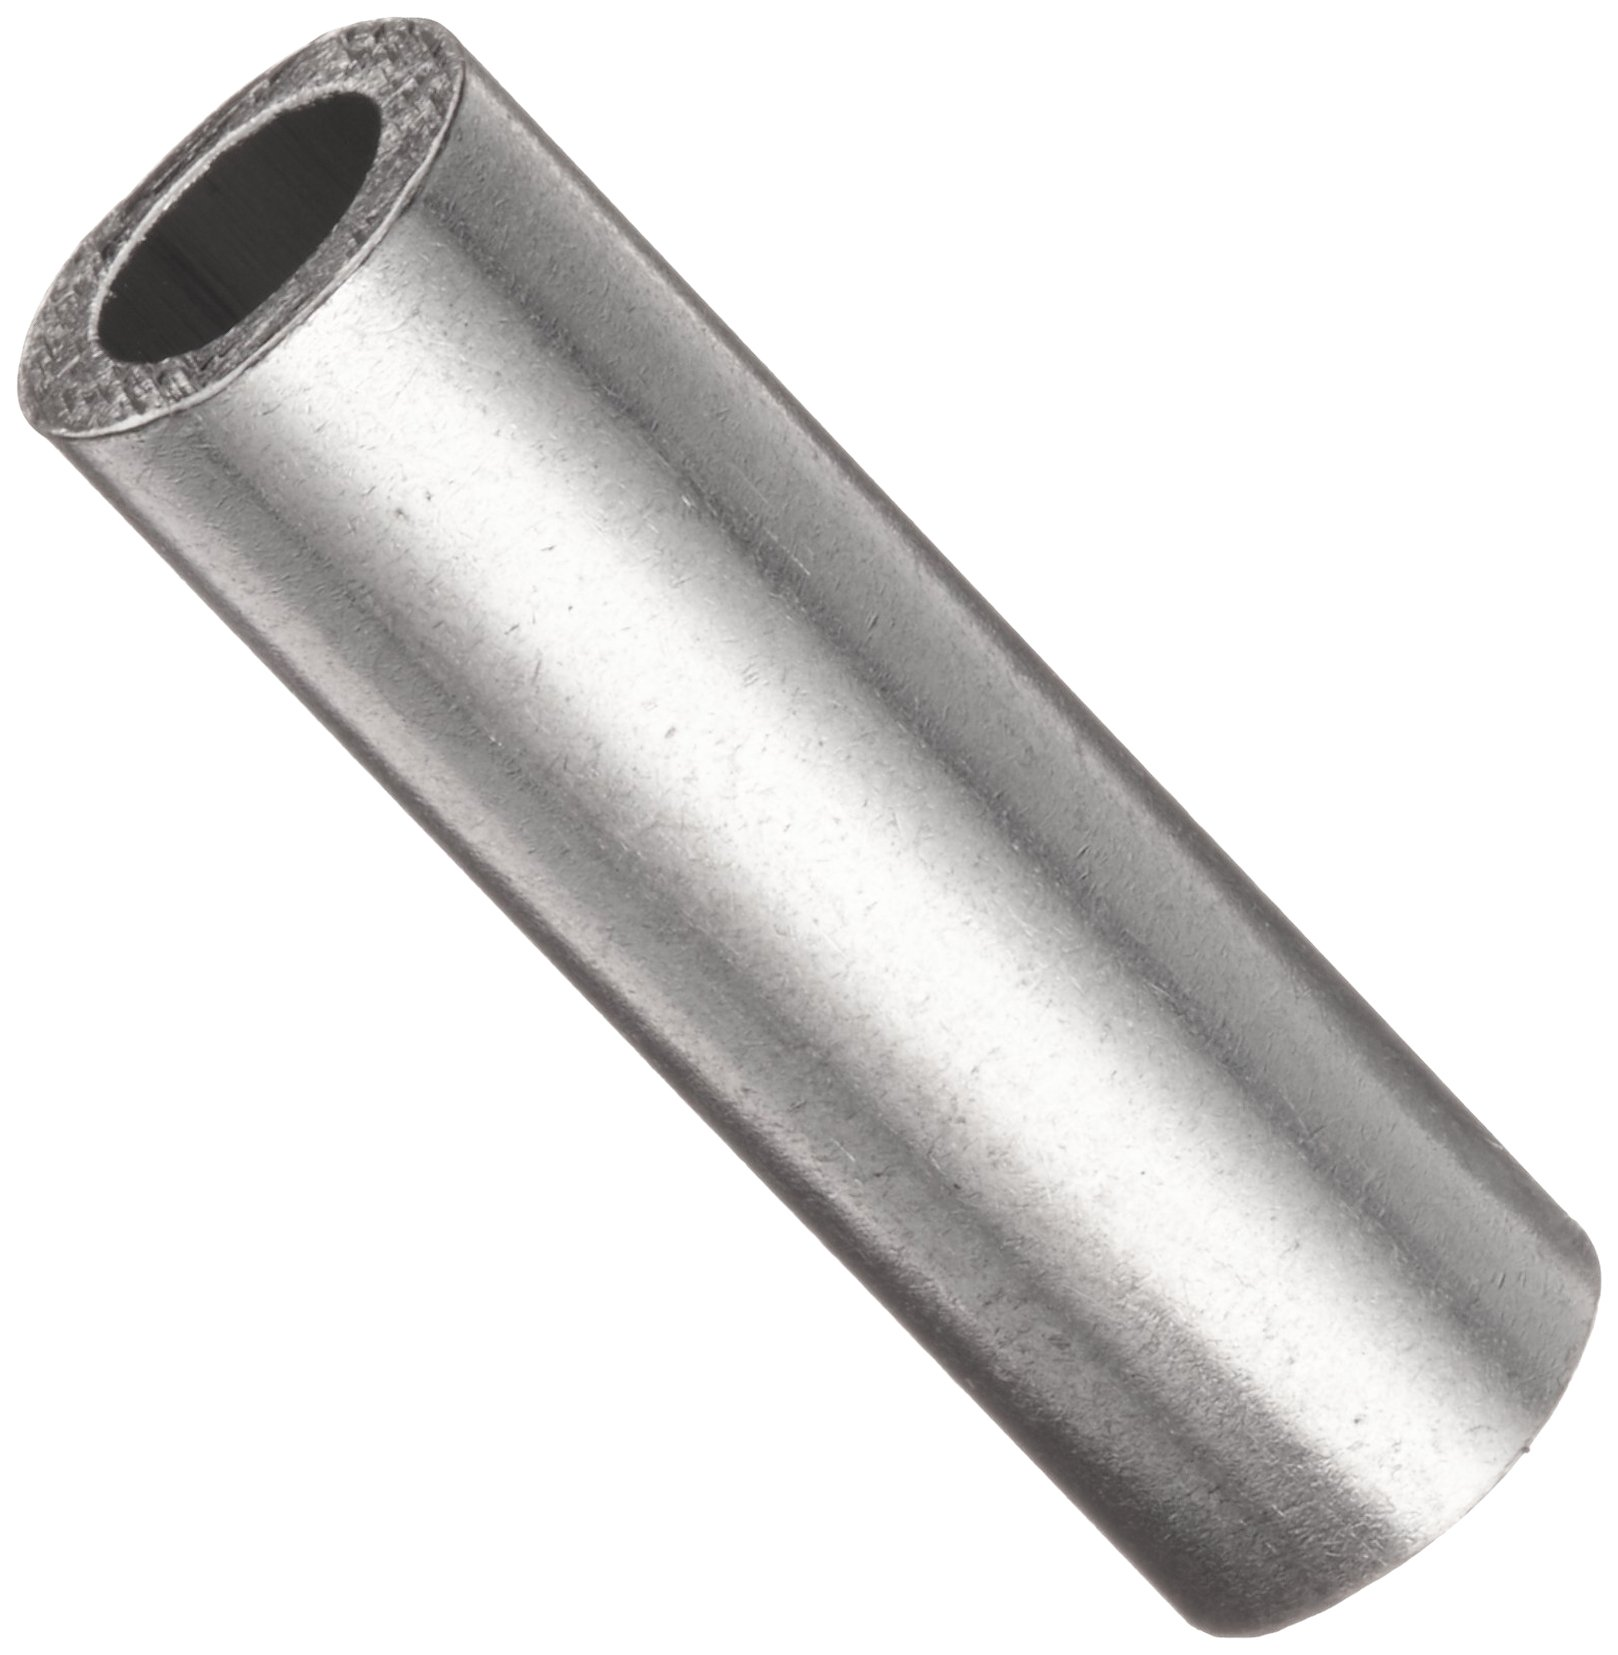 Round Spacer, 2011 Aluminum, Plain Finish, #10 Screw Size, 1'' Length (Pack of 10)